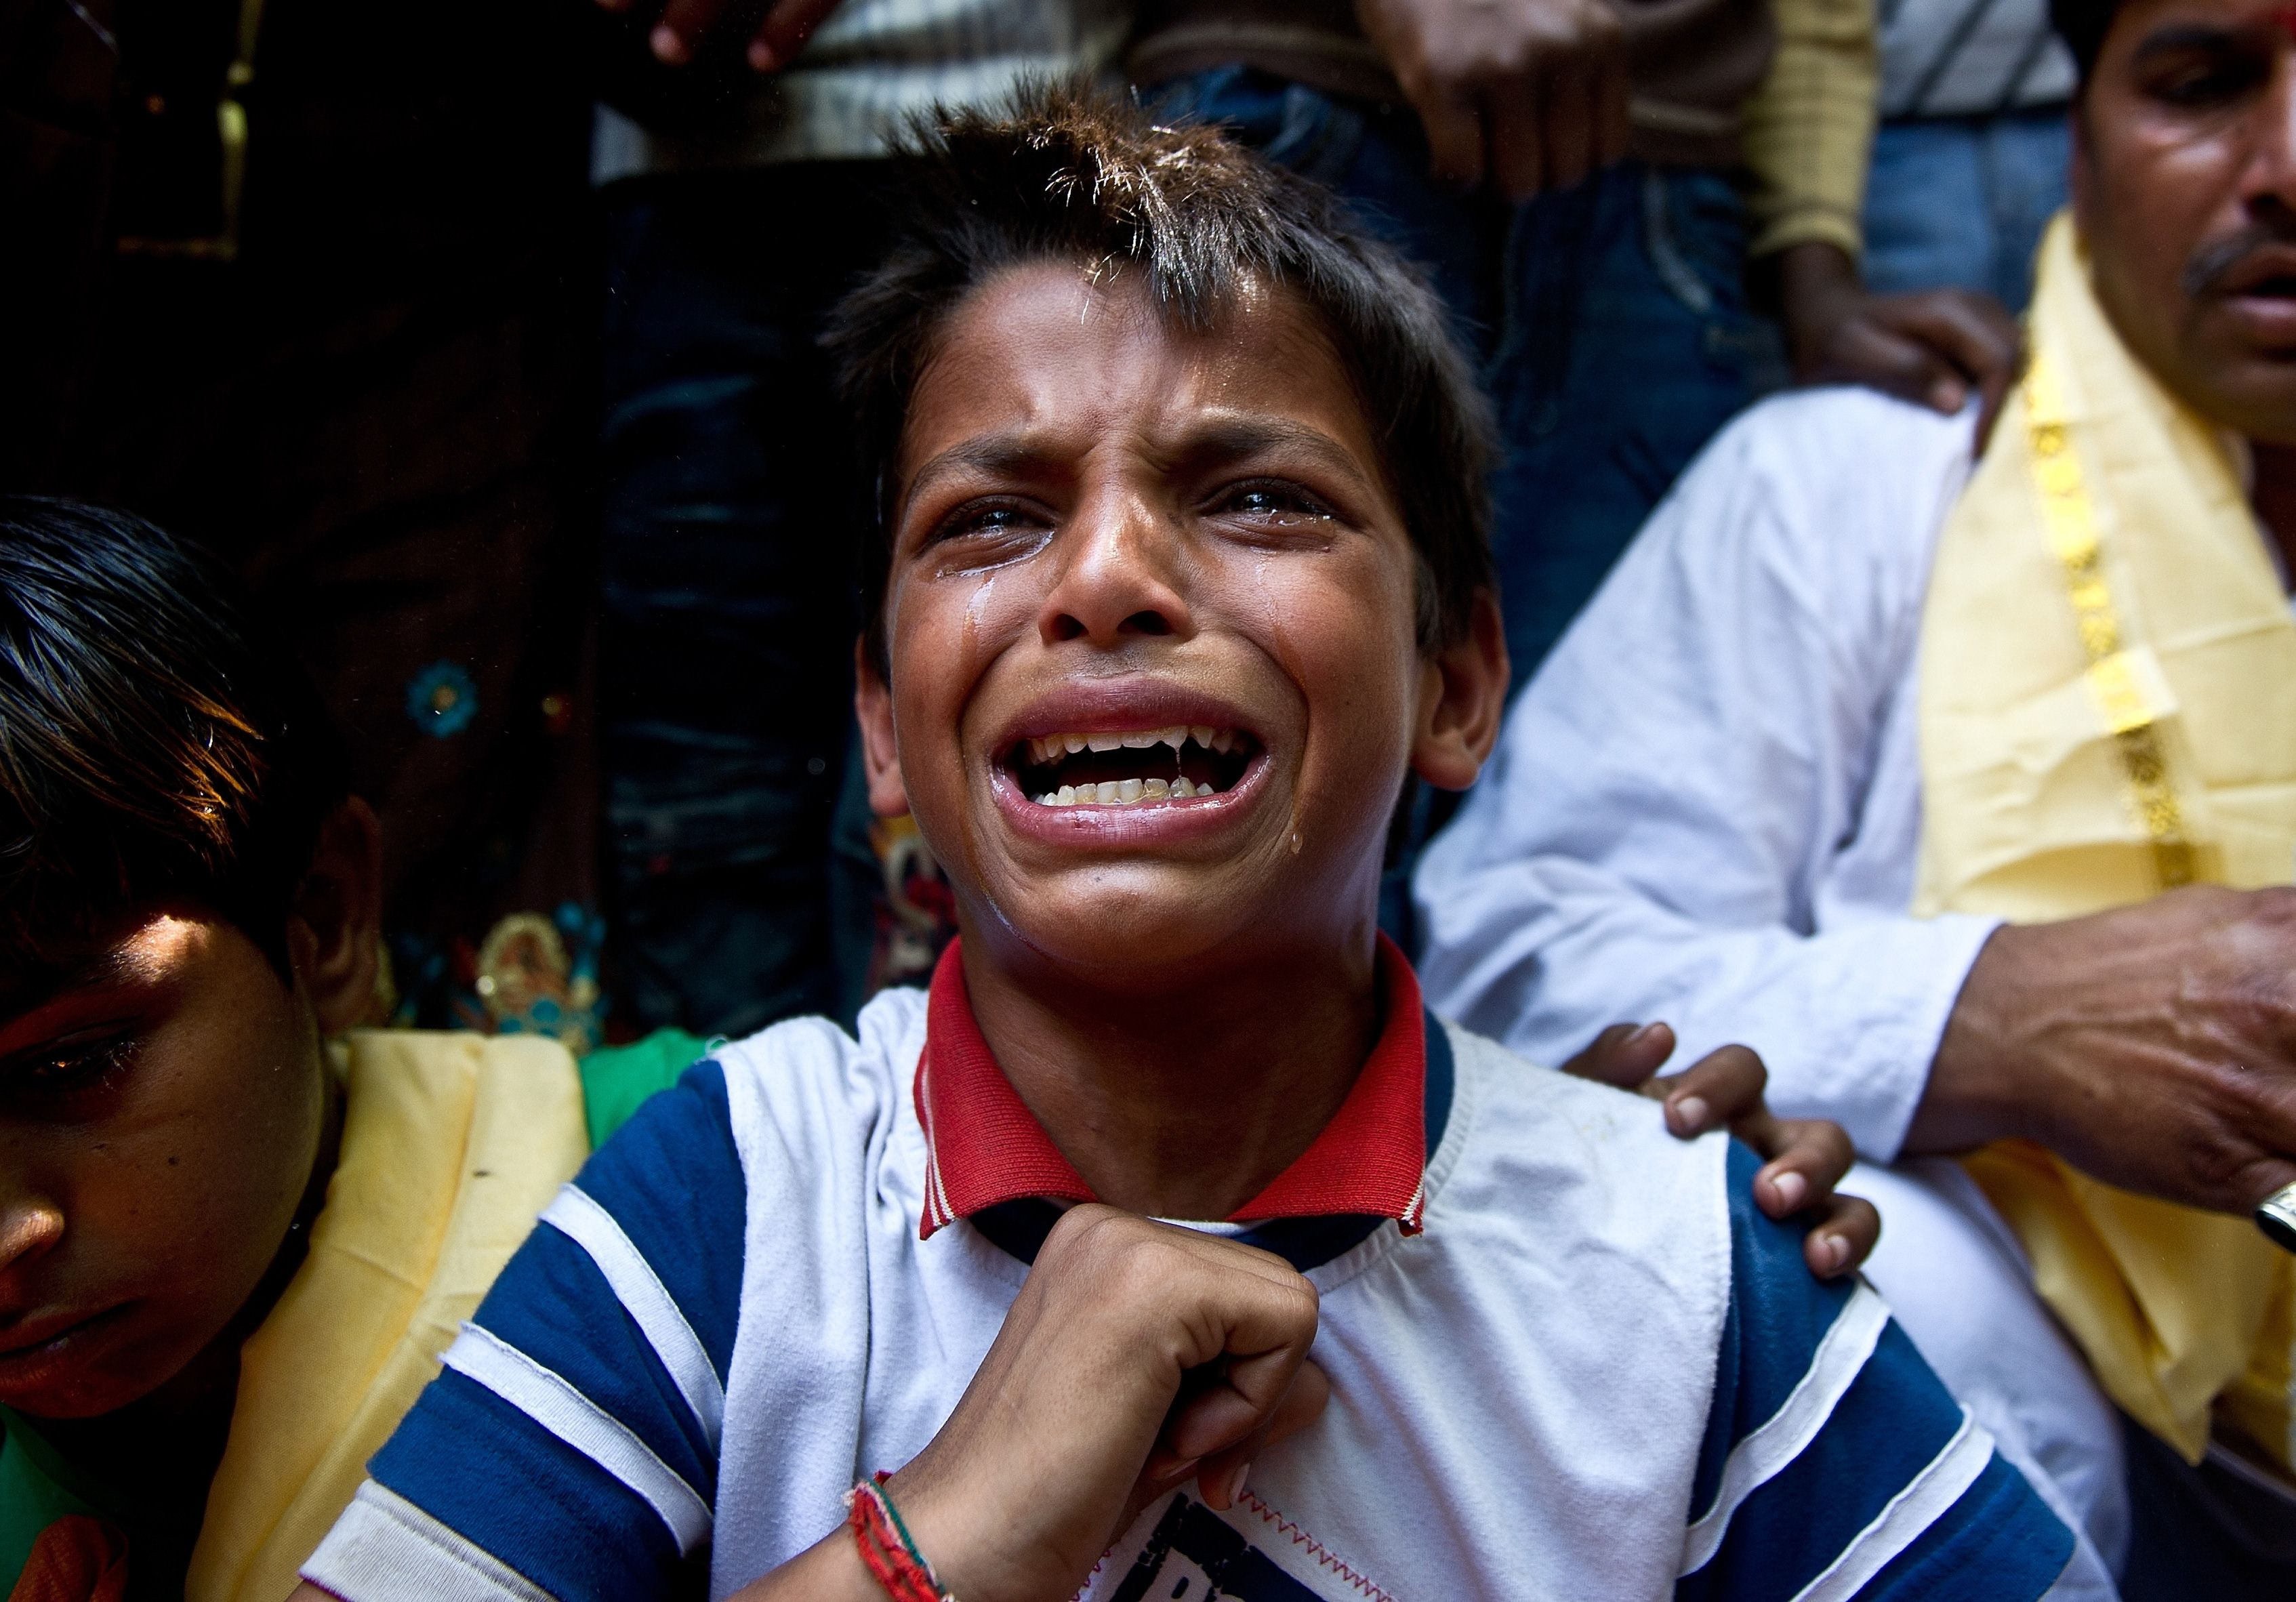 A young minority Hindu refugee from Pakistan breaks down during a protest outside the United Nations office in New Delhi on April 17, 2013.